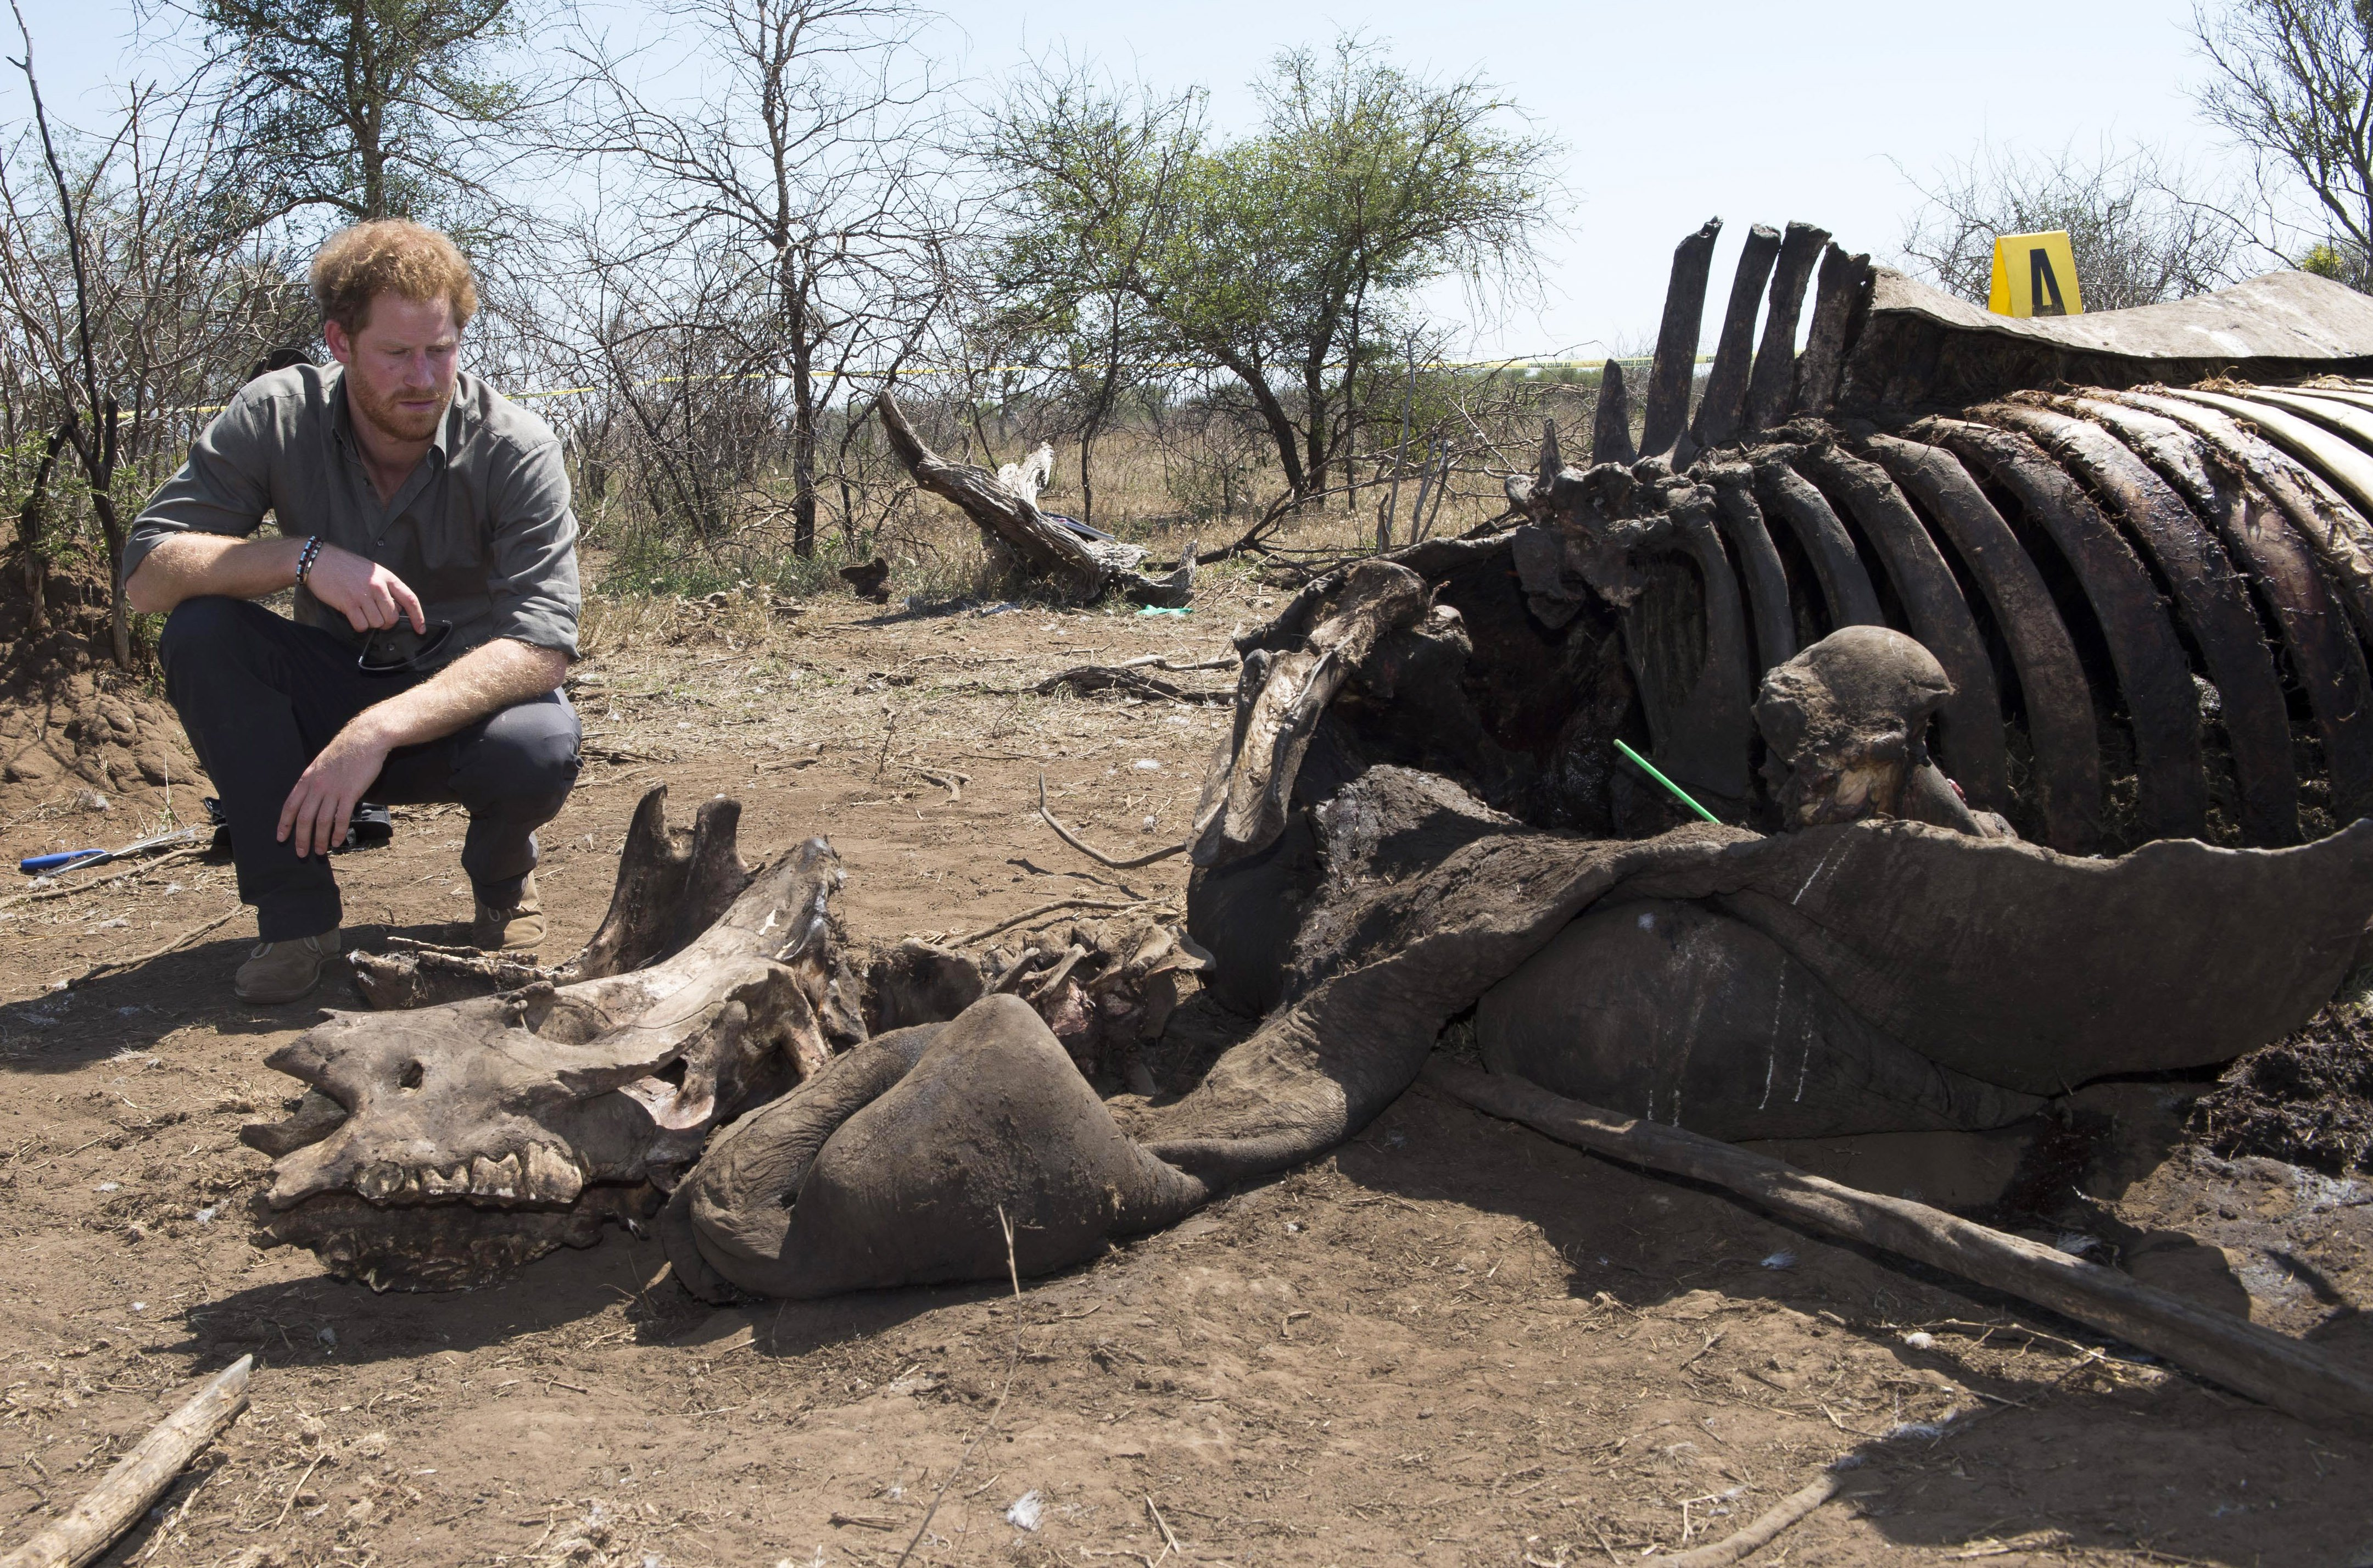 Prince Harry looks at the carcass of a rhino which was killed by poachers in Kruger National Park in Nelspruit, South Africa on Dec. 2, 2015.